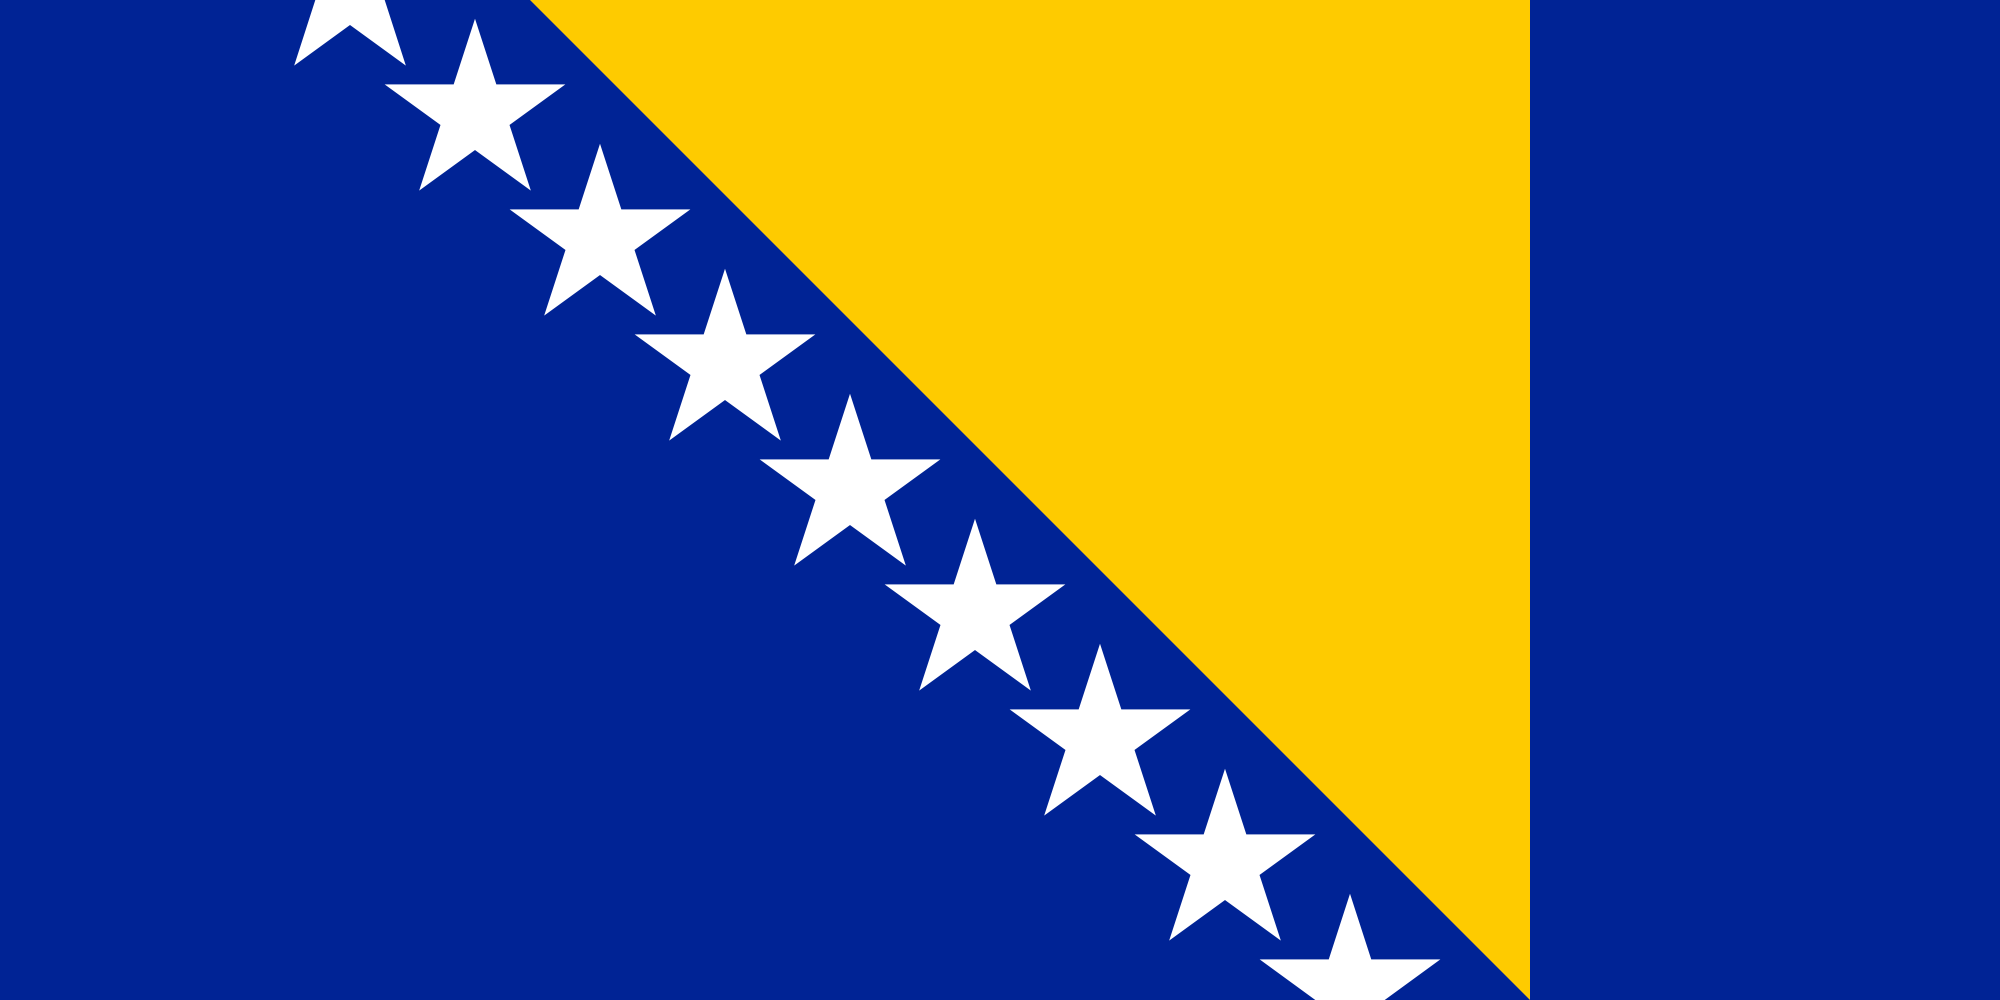 File:Flag of Bosnia and Herzegovina.svg Wikimedia Commons